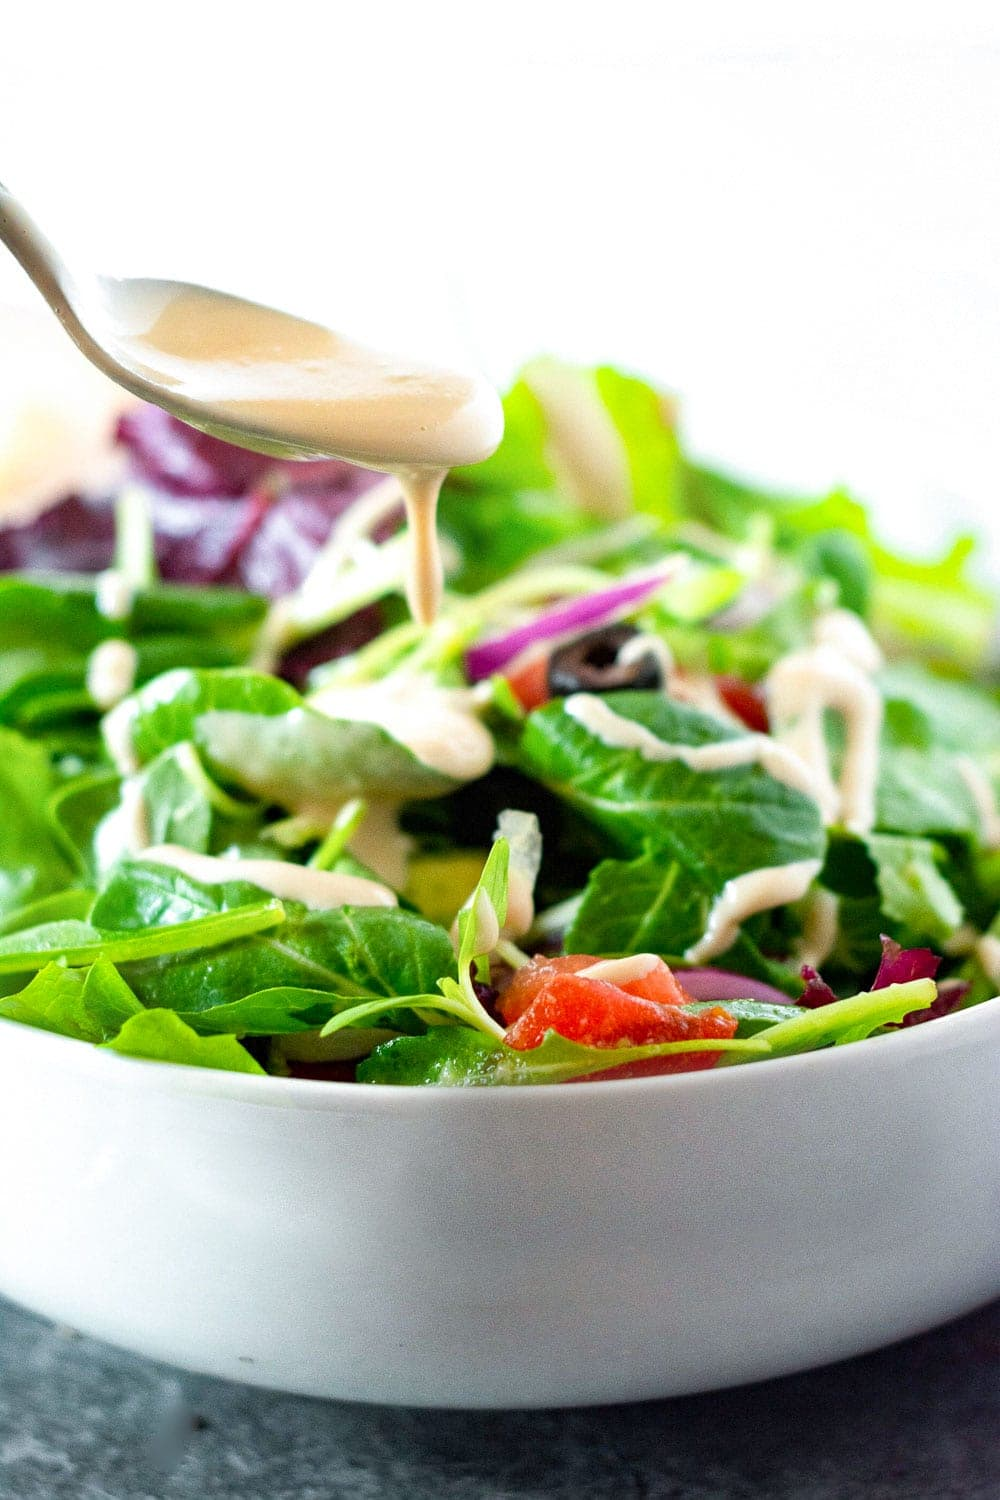 Salad with creamy Asian salad dressing in a white bowl